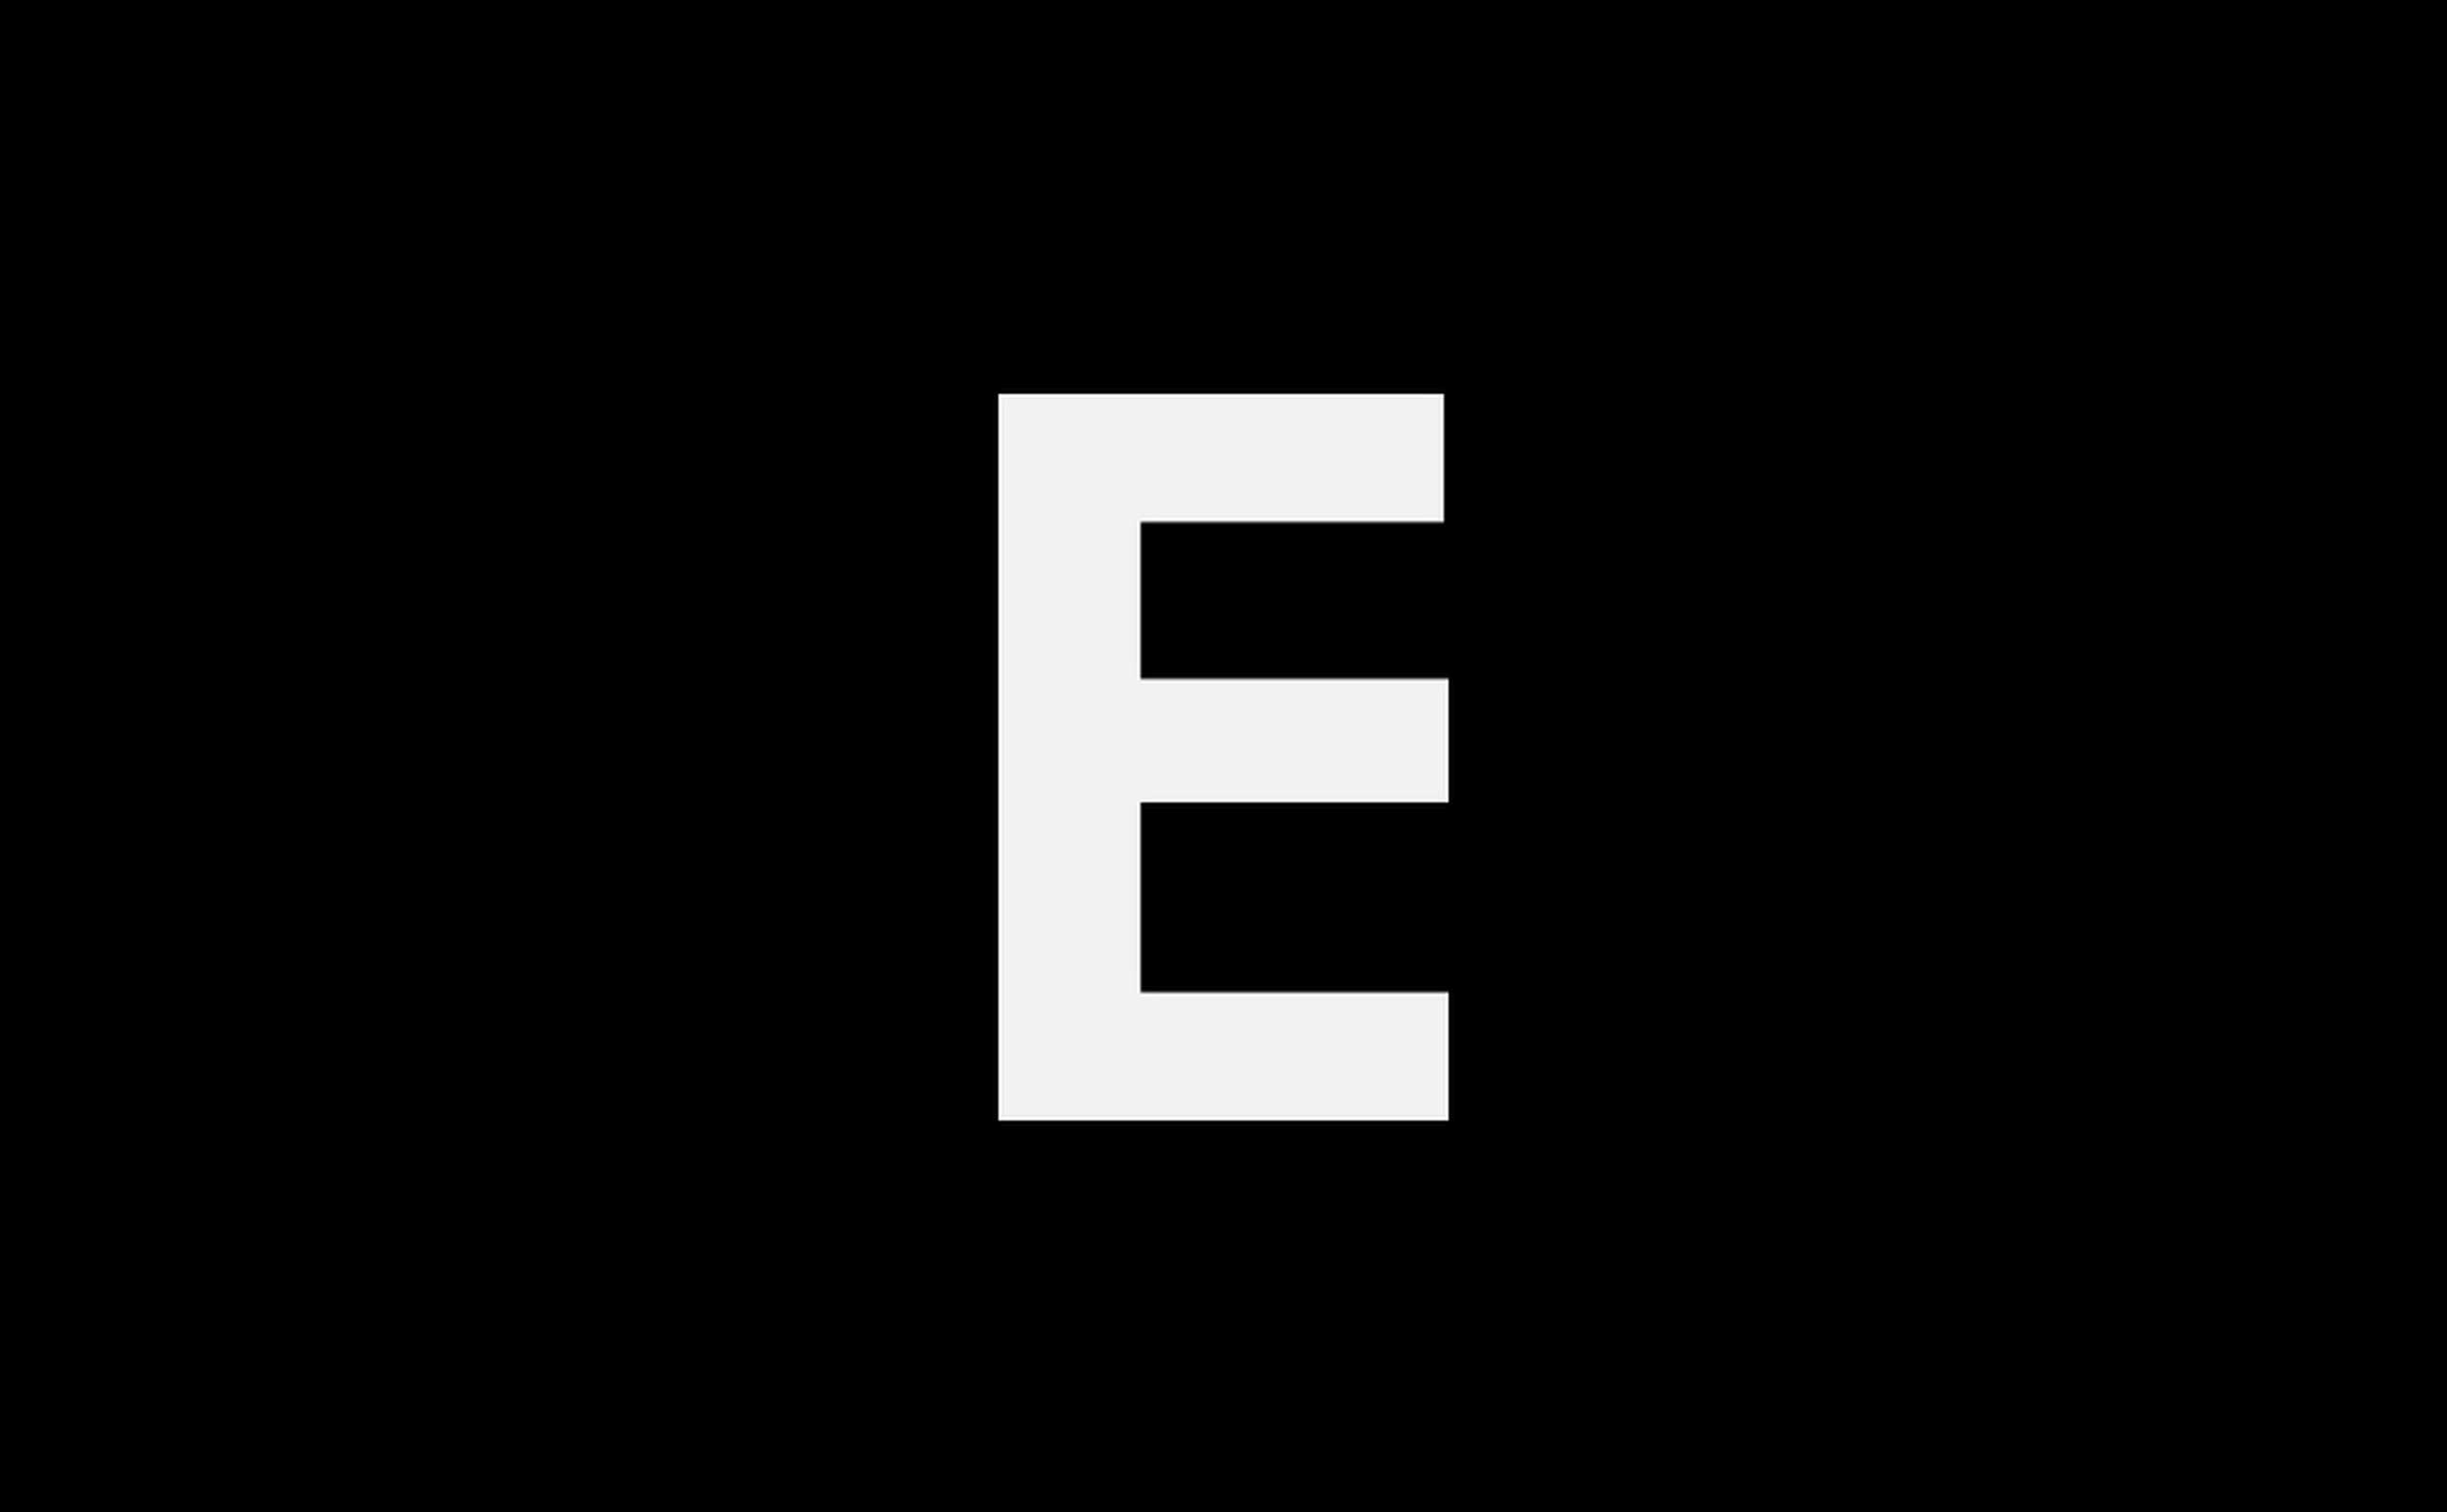 yellow, full frame, backgrounds, beauty in nature, macro, close-up, nature, extreme close-up, scenics, vibrant color, majestic, sun, tranquility, extreme close up, fragility, freshness, bloom, symbol, bright, painted image